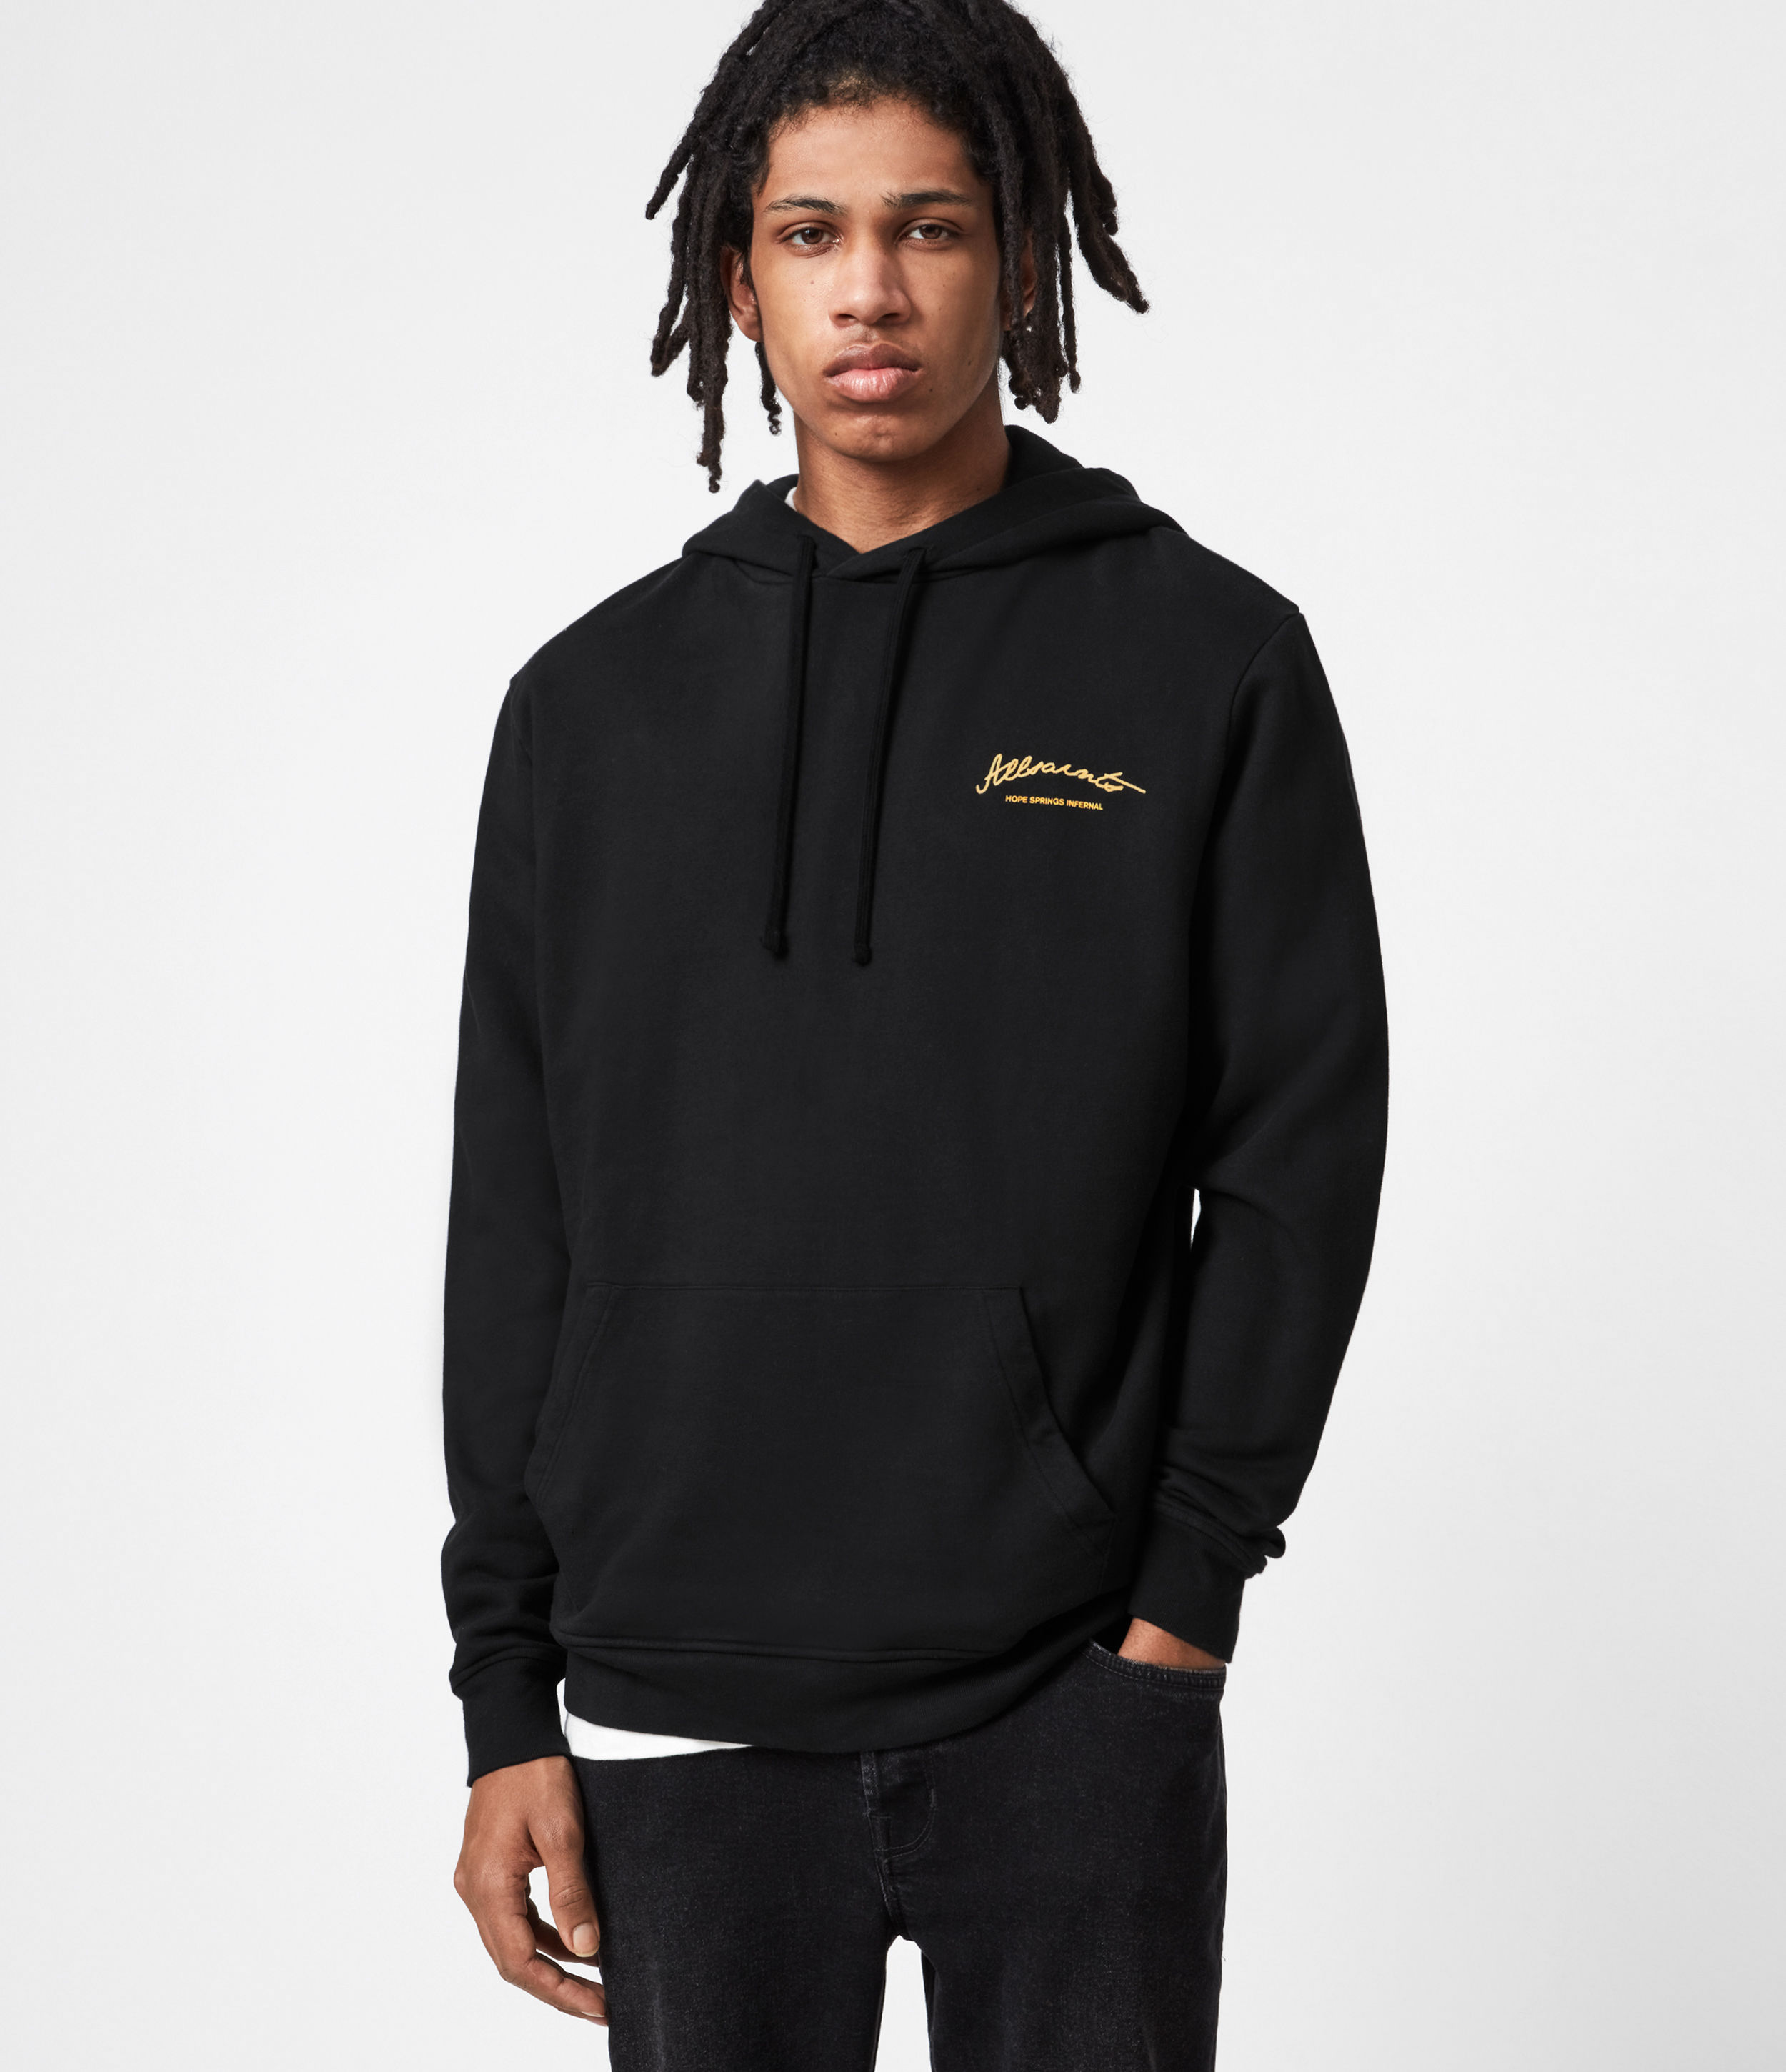 AllSaints Men's Cotton Relaxed Fit Carson Pullover Hoodie, Black and Yellow, Size: S